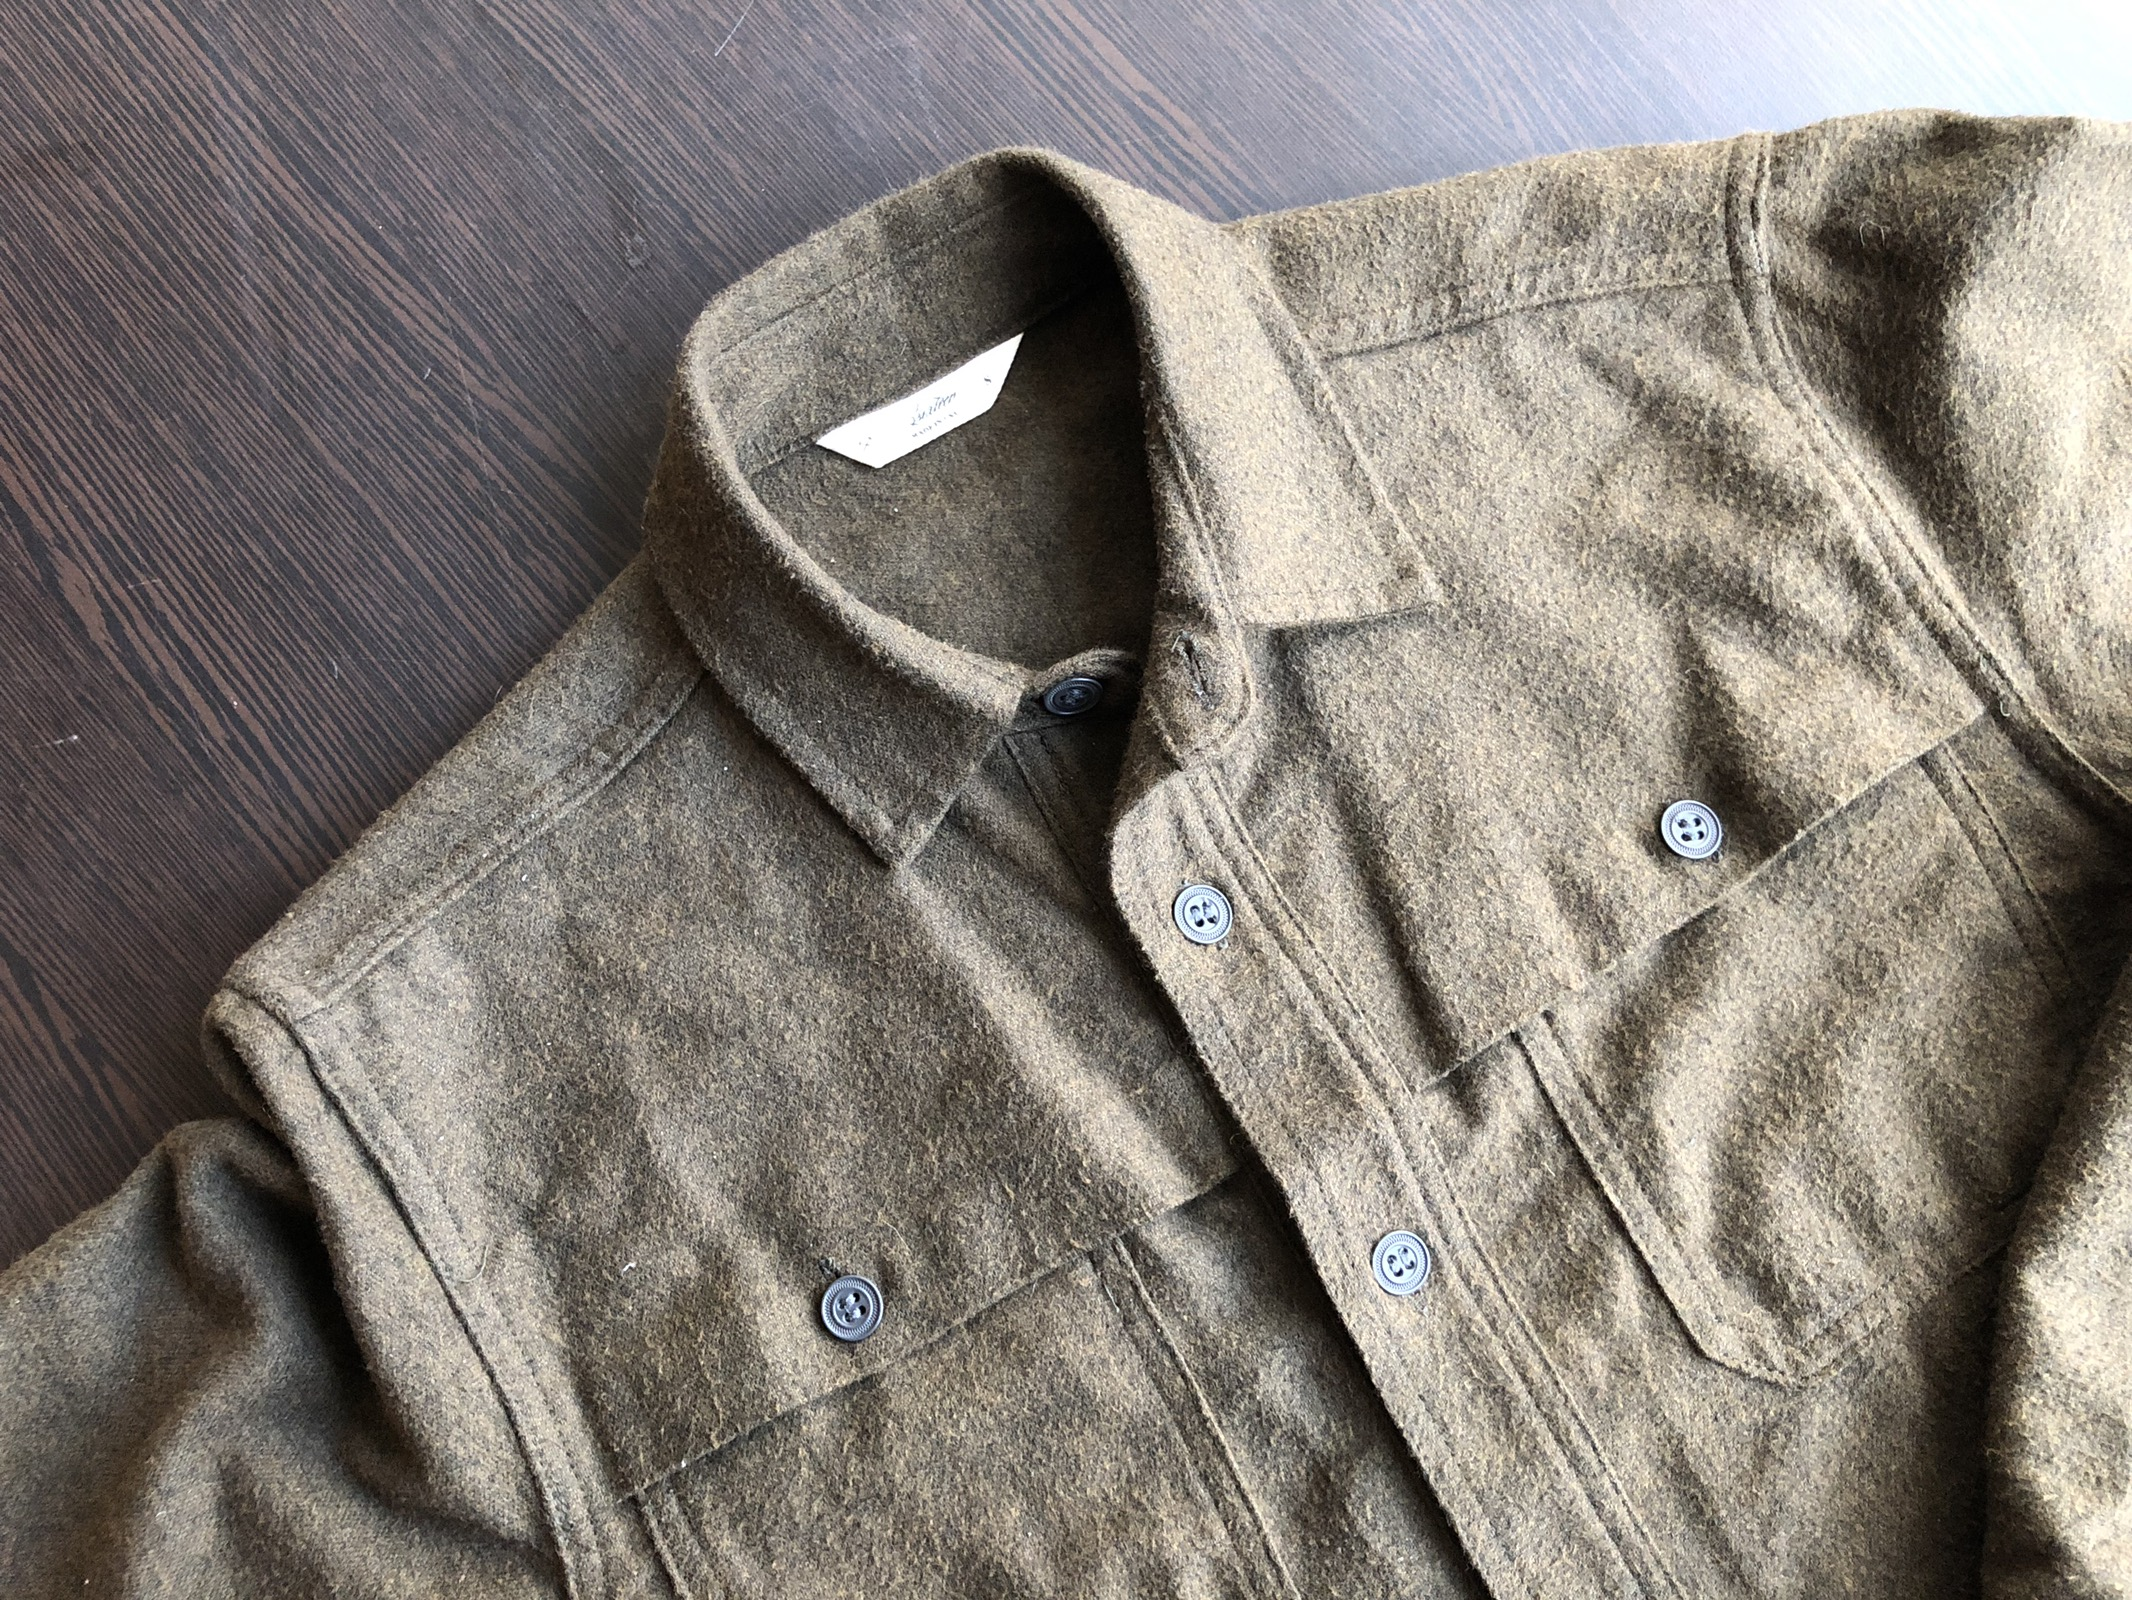 f4aa60a2117 3sixteen Japanese Flannel Hunting Shirt Size s - Shirts (Button Ups) for  Sale - Grailed